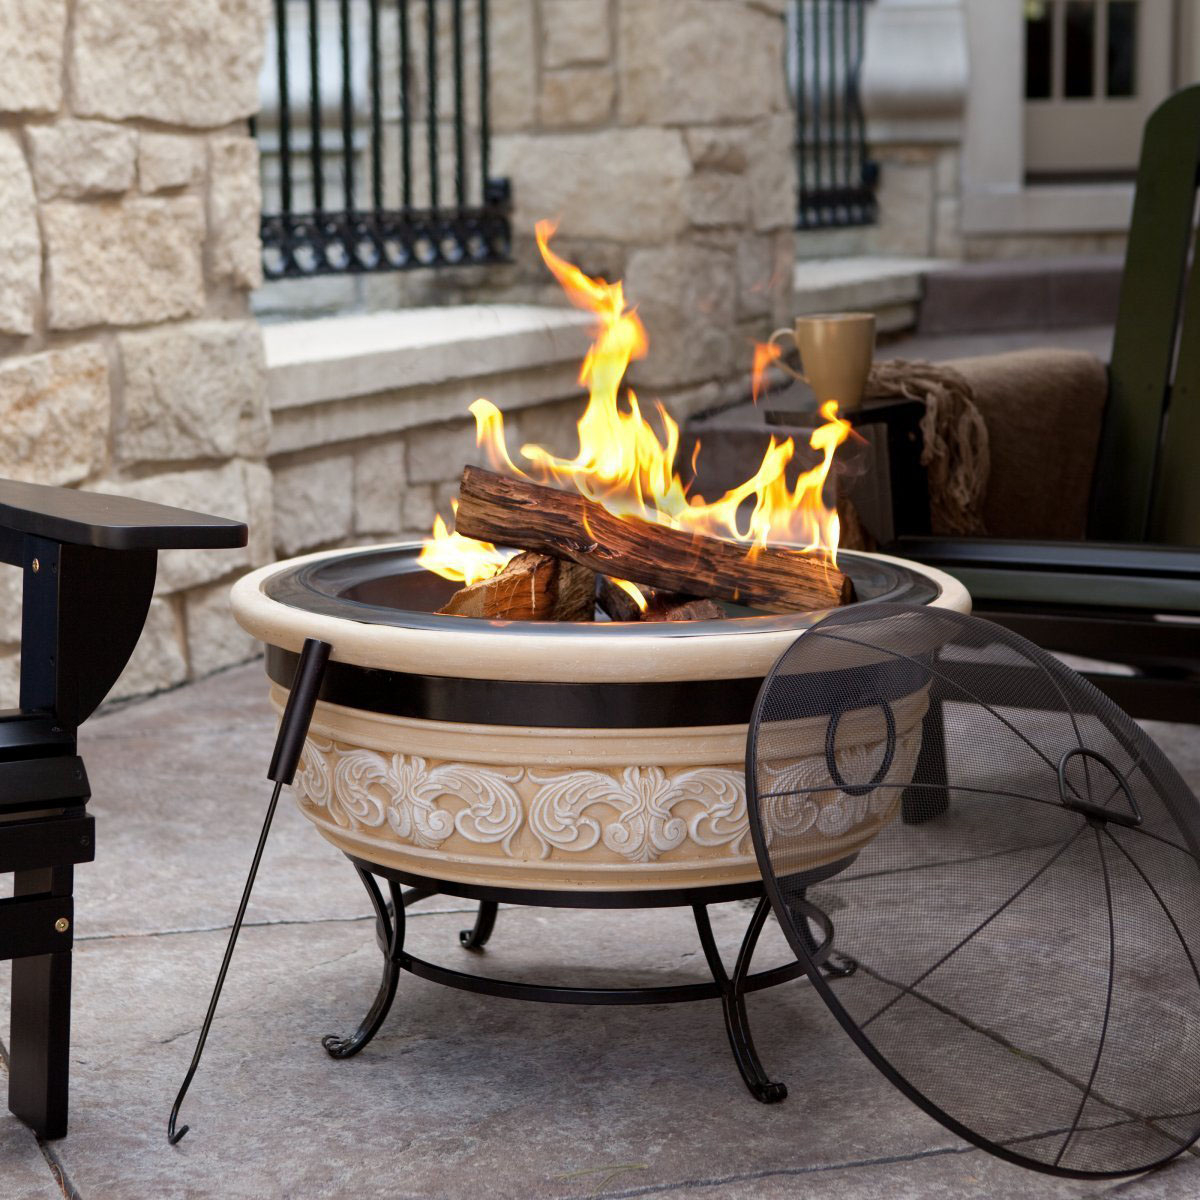 Outdoor Fire Pit Portable Fireplace Design Ideas intended for measurements 1200 X 1200